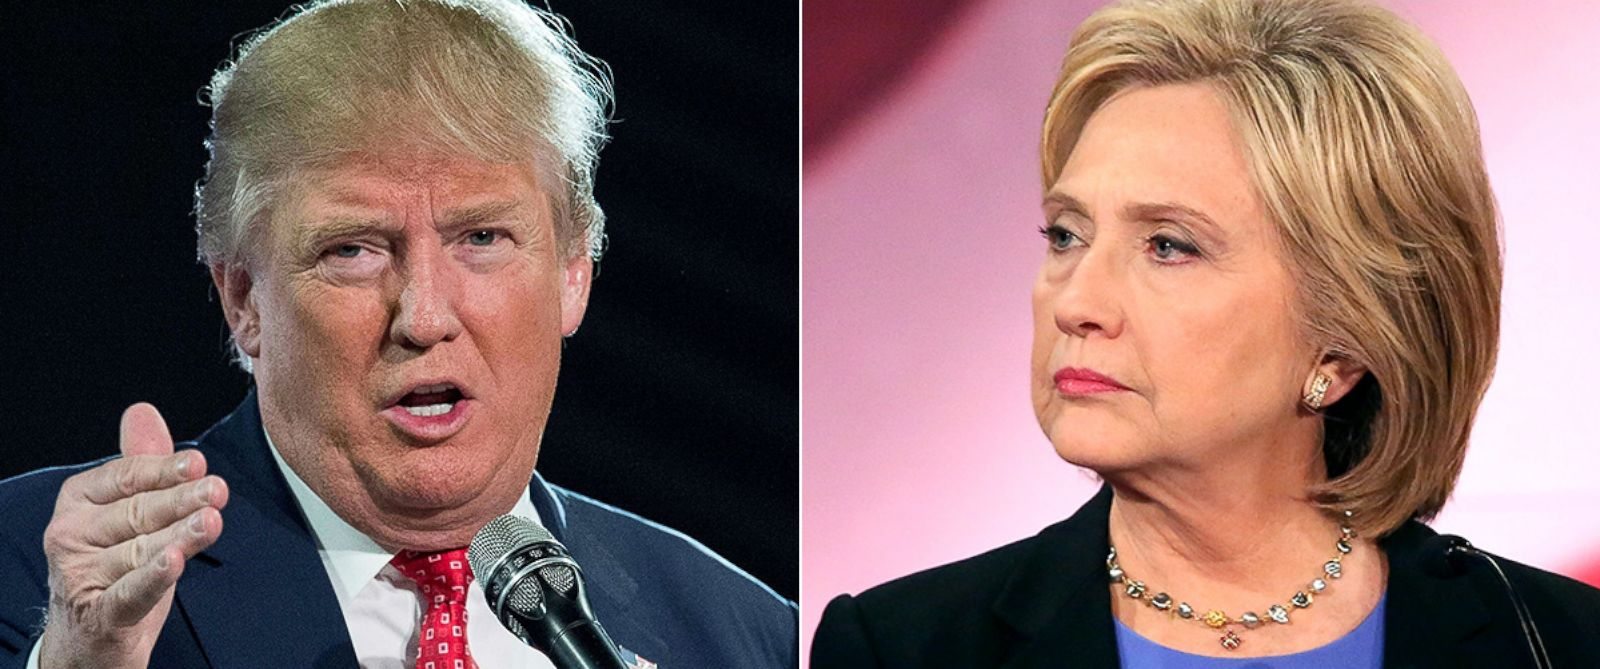 PHOTO: Donald Trump, left, and Hillary Clinton are vying for the White House in the 2016 presidential race.